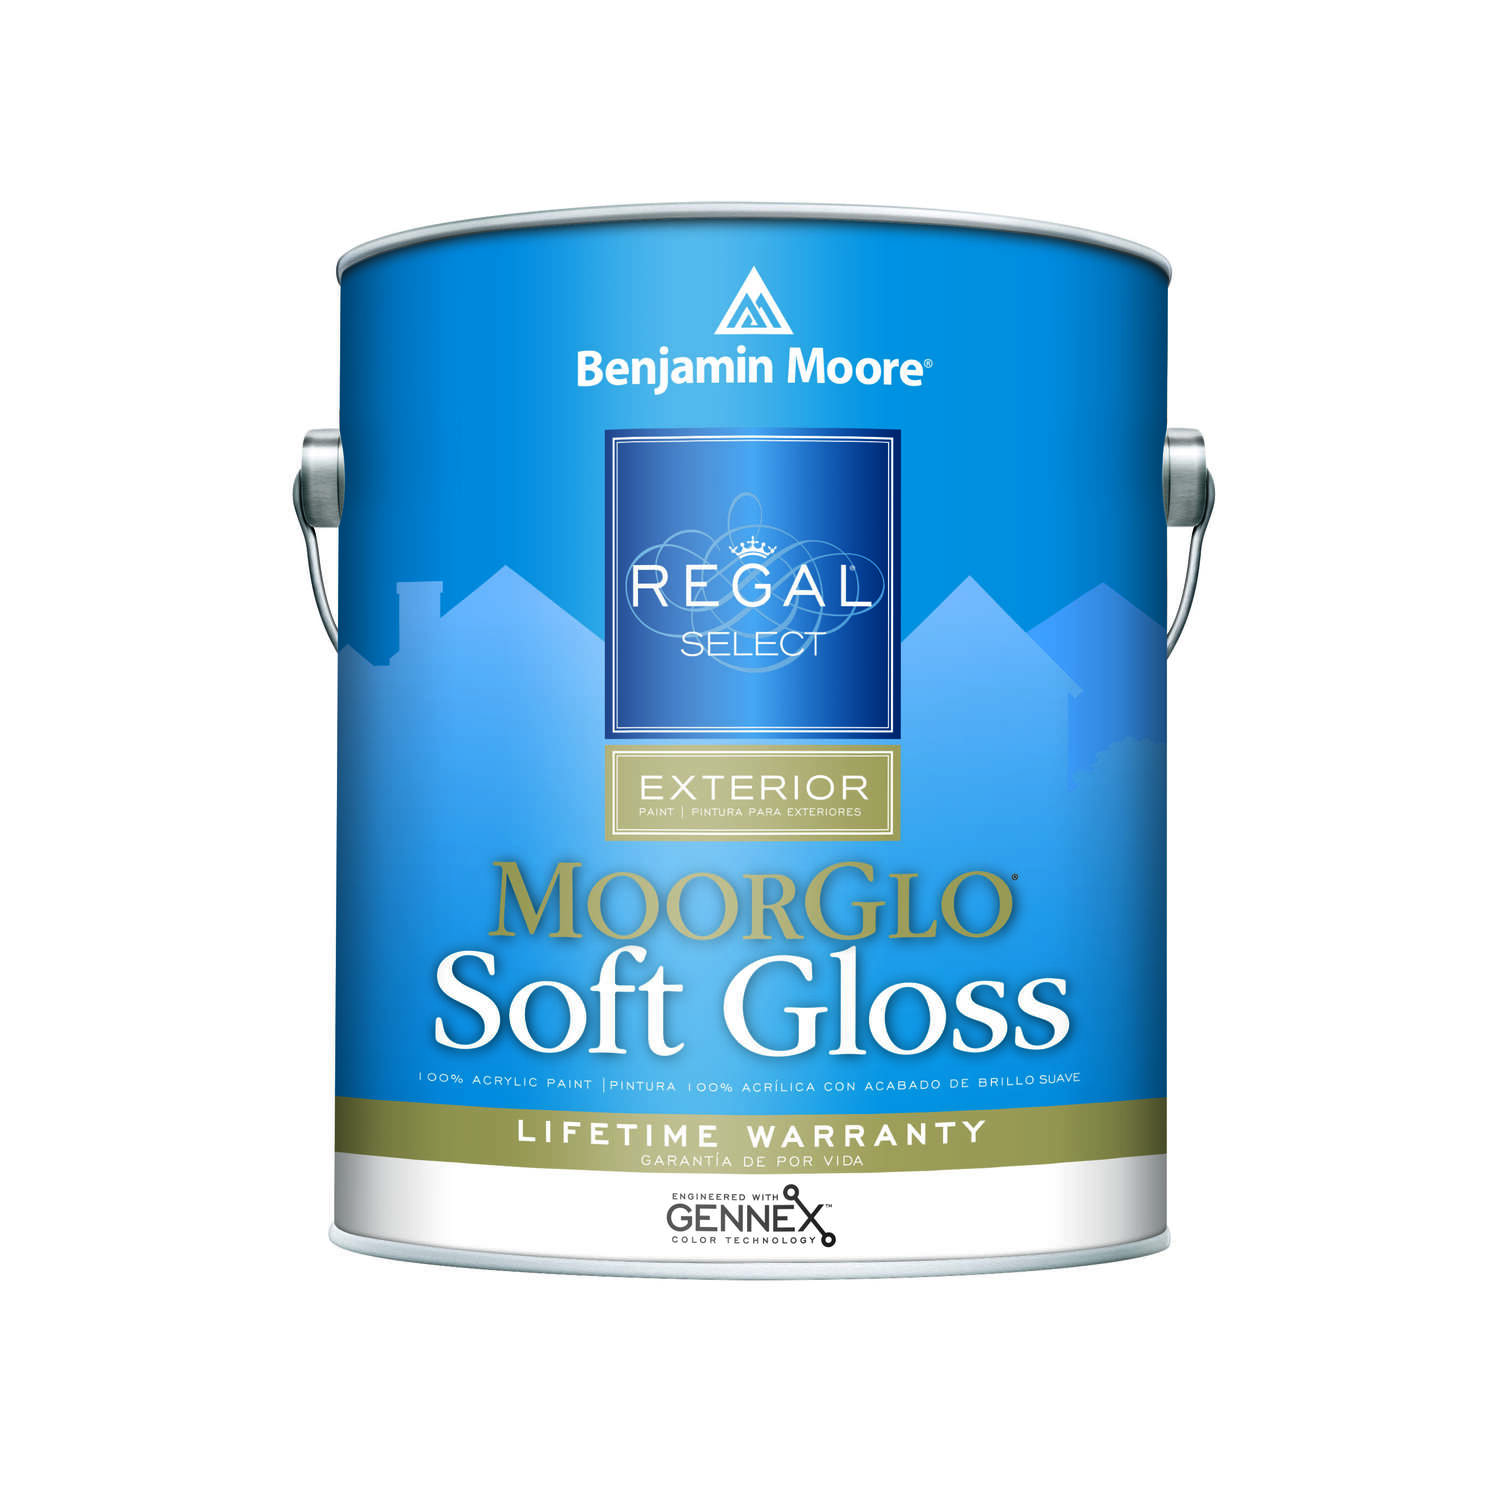 Benjamin Moore  Regal  Soft Gloss  Tintable Base  Base 3  Acrylic  Paint  Outdoor  1 gal.